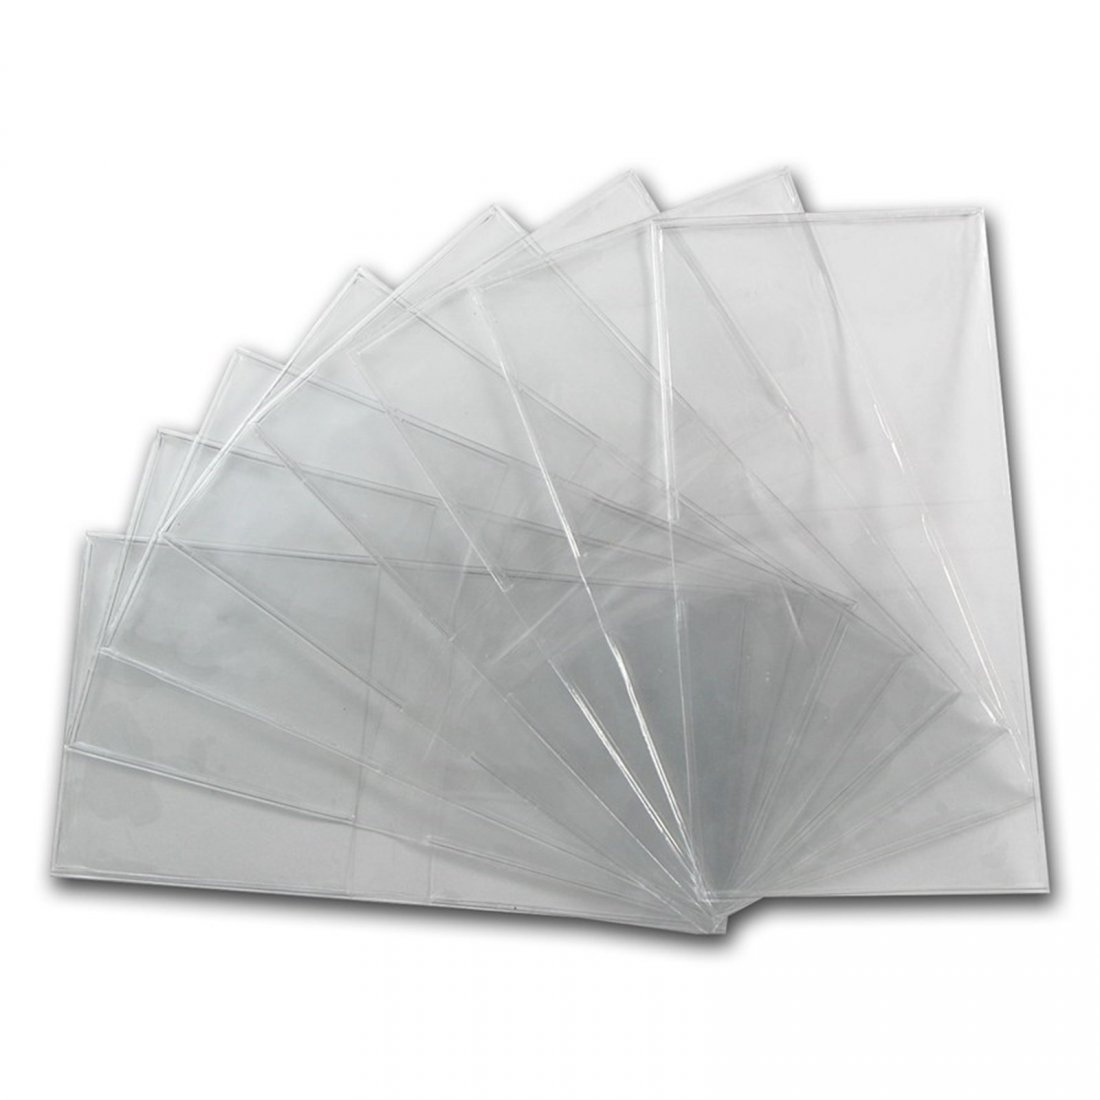 2.5 X 2.5 Soft Flips (#15) - (100 count)